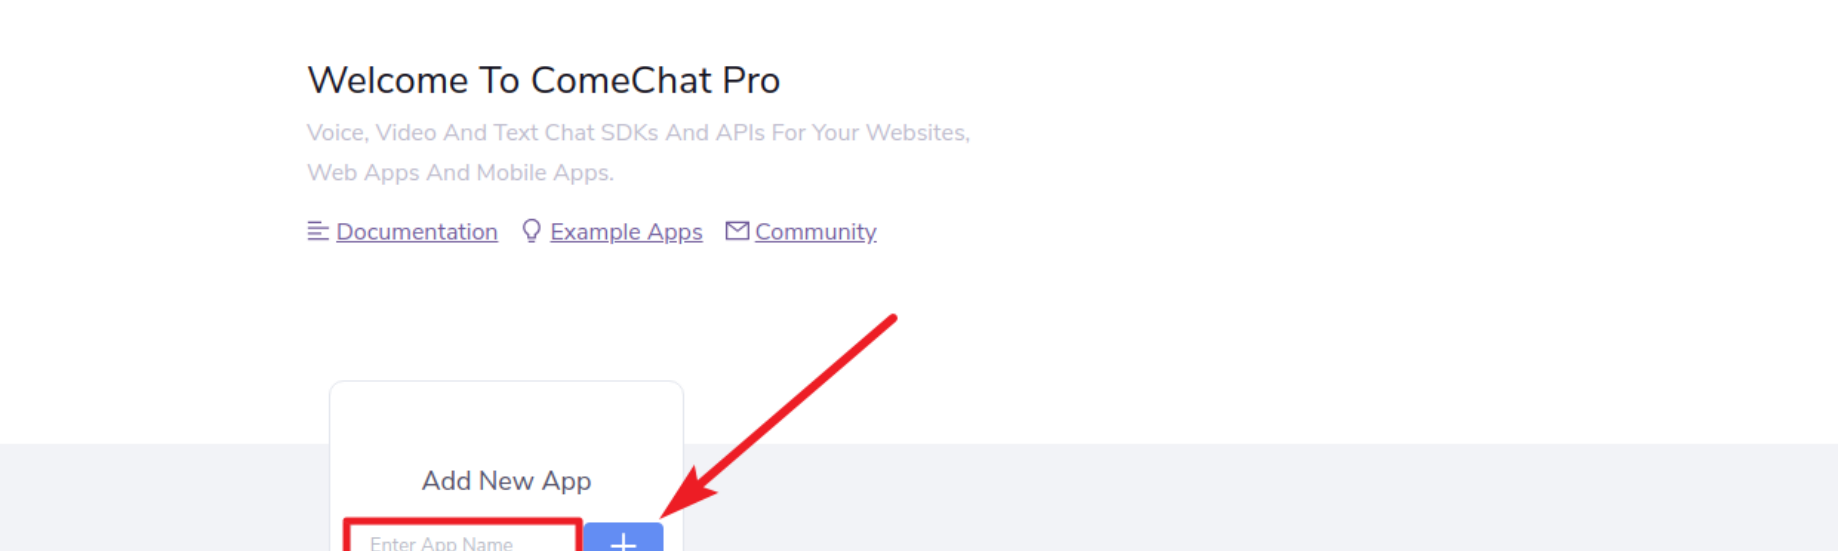 Build a Slack-like Chat Application with React - Frontend Weekly